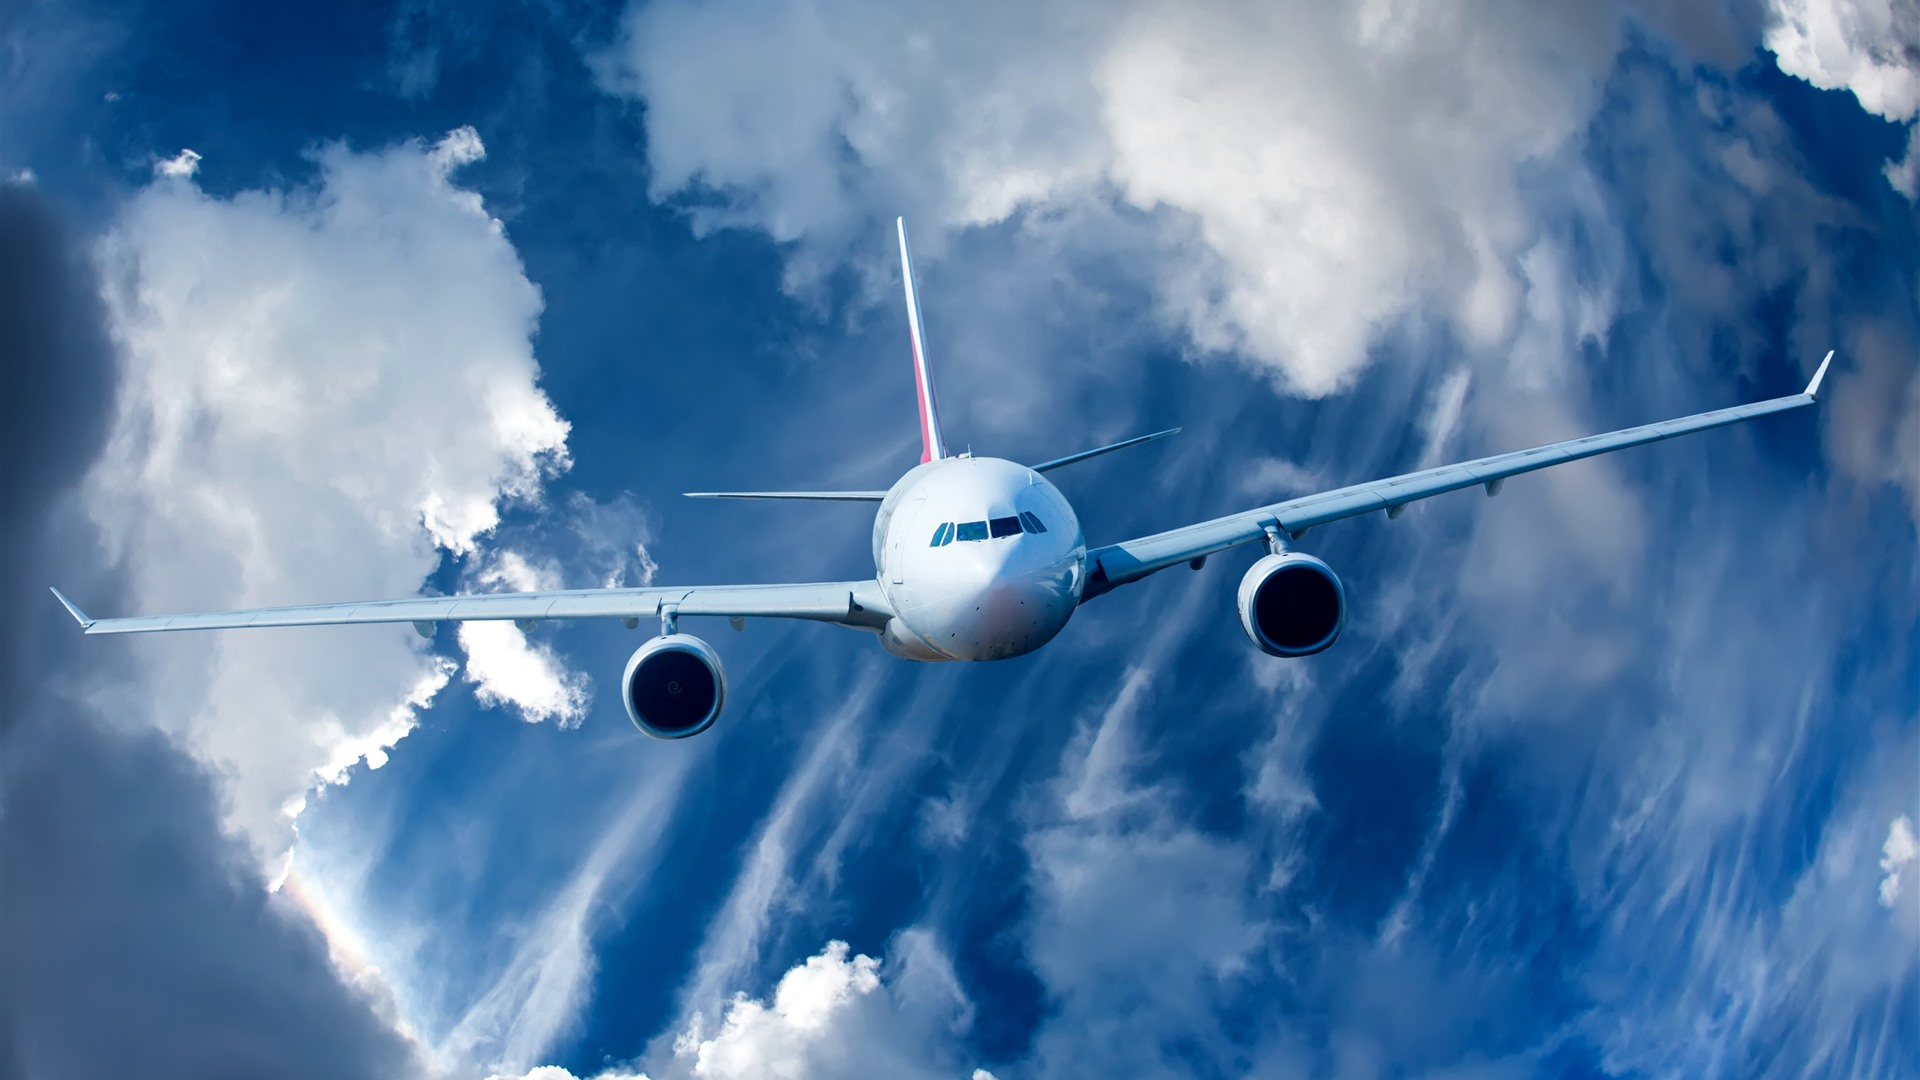 Wallpaper Airplane Clouds Sky Front View 5120x2880 Uhd 5k Picture Image